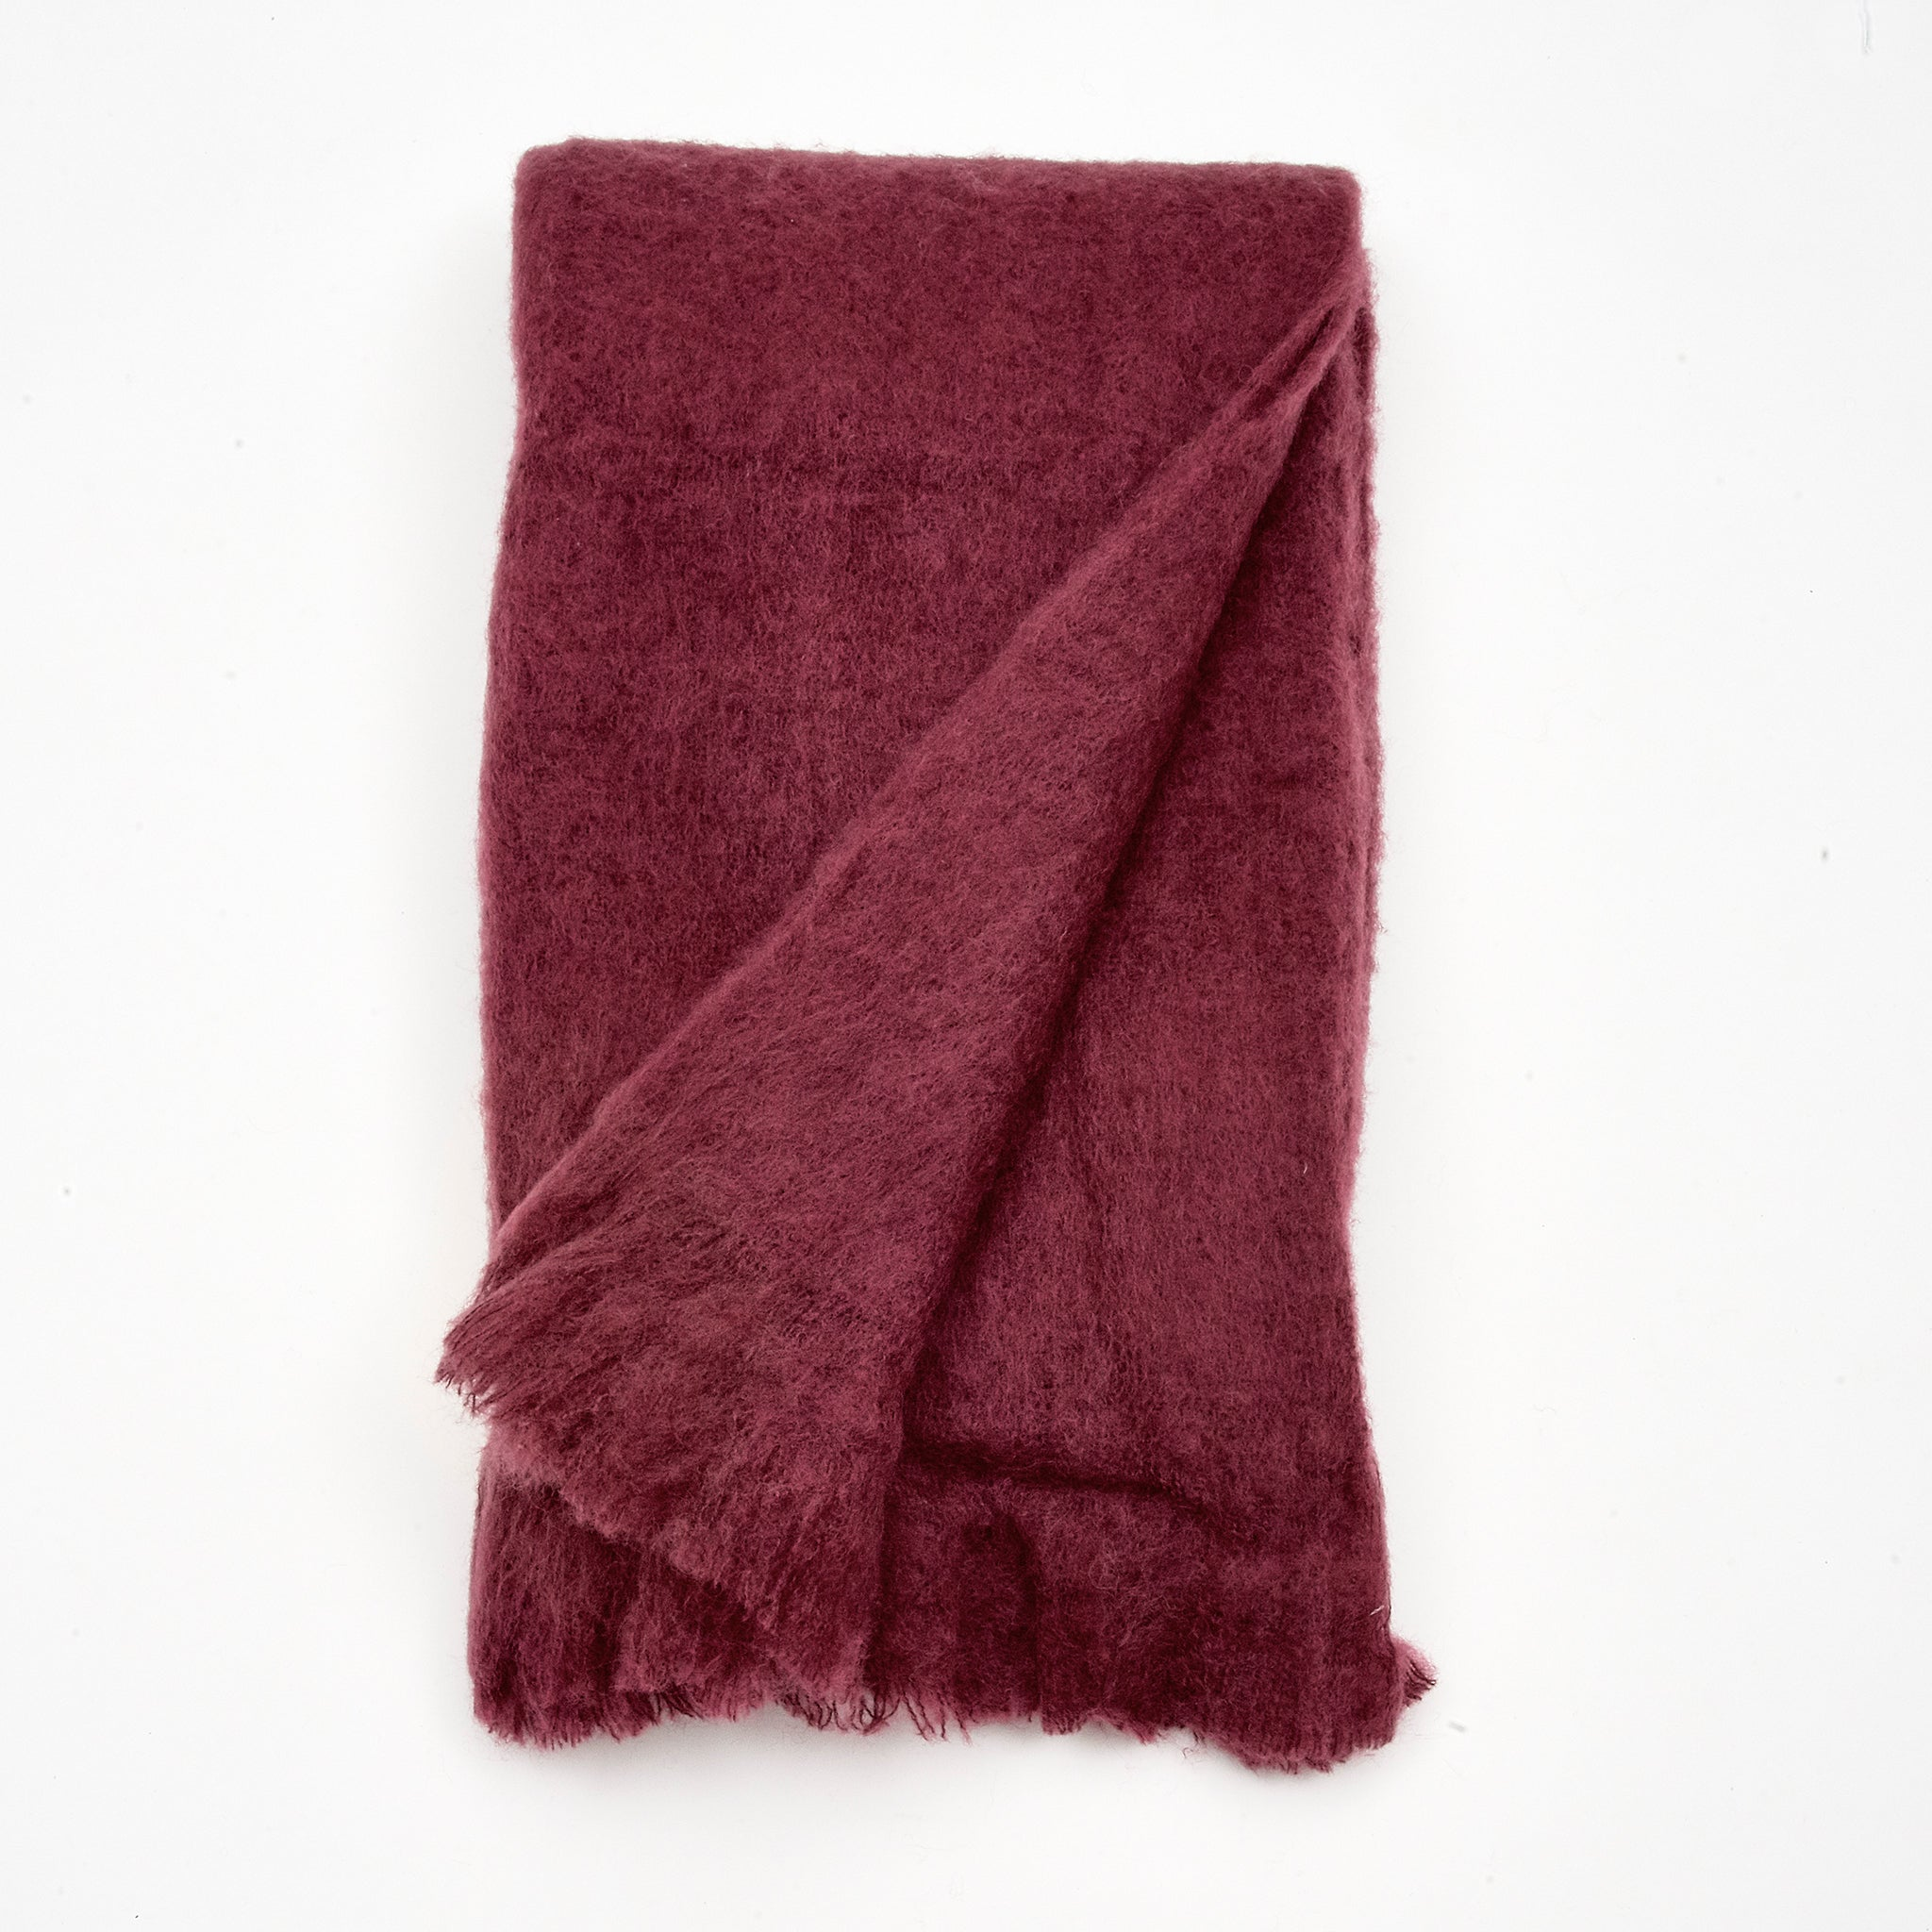 Beautiful Wine Red Wool Blanket and Throws | Sandhi